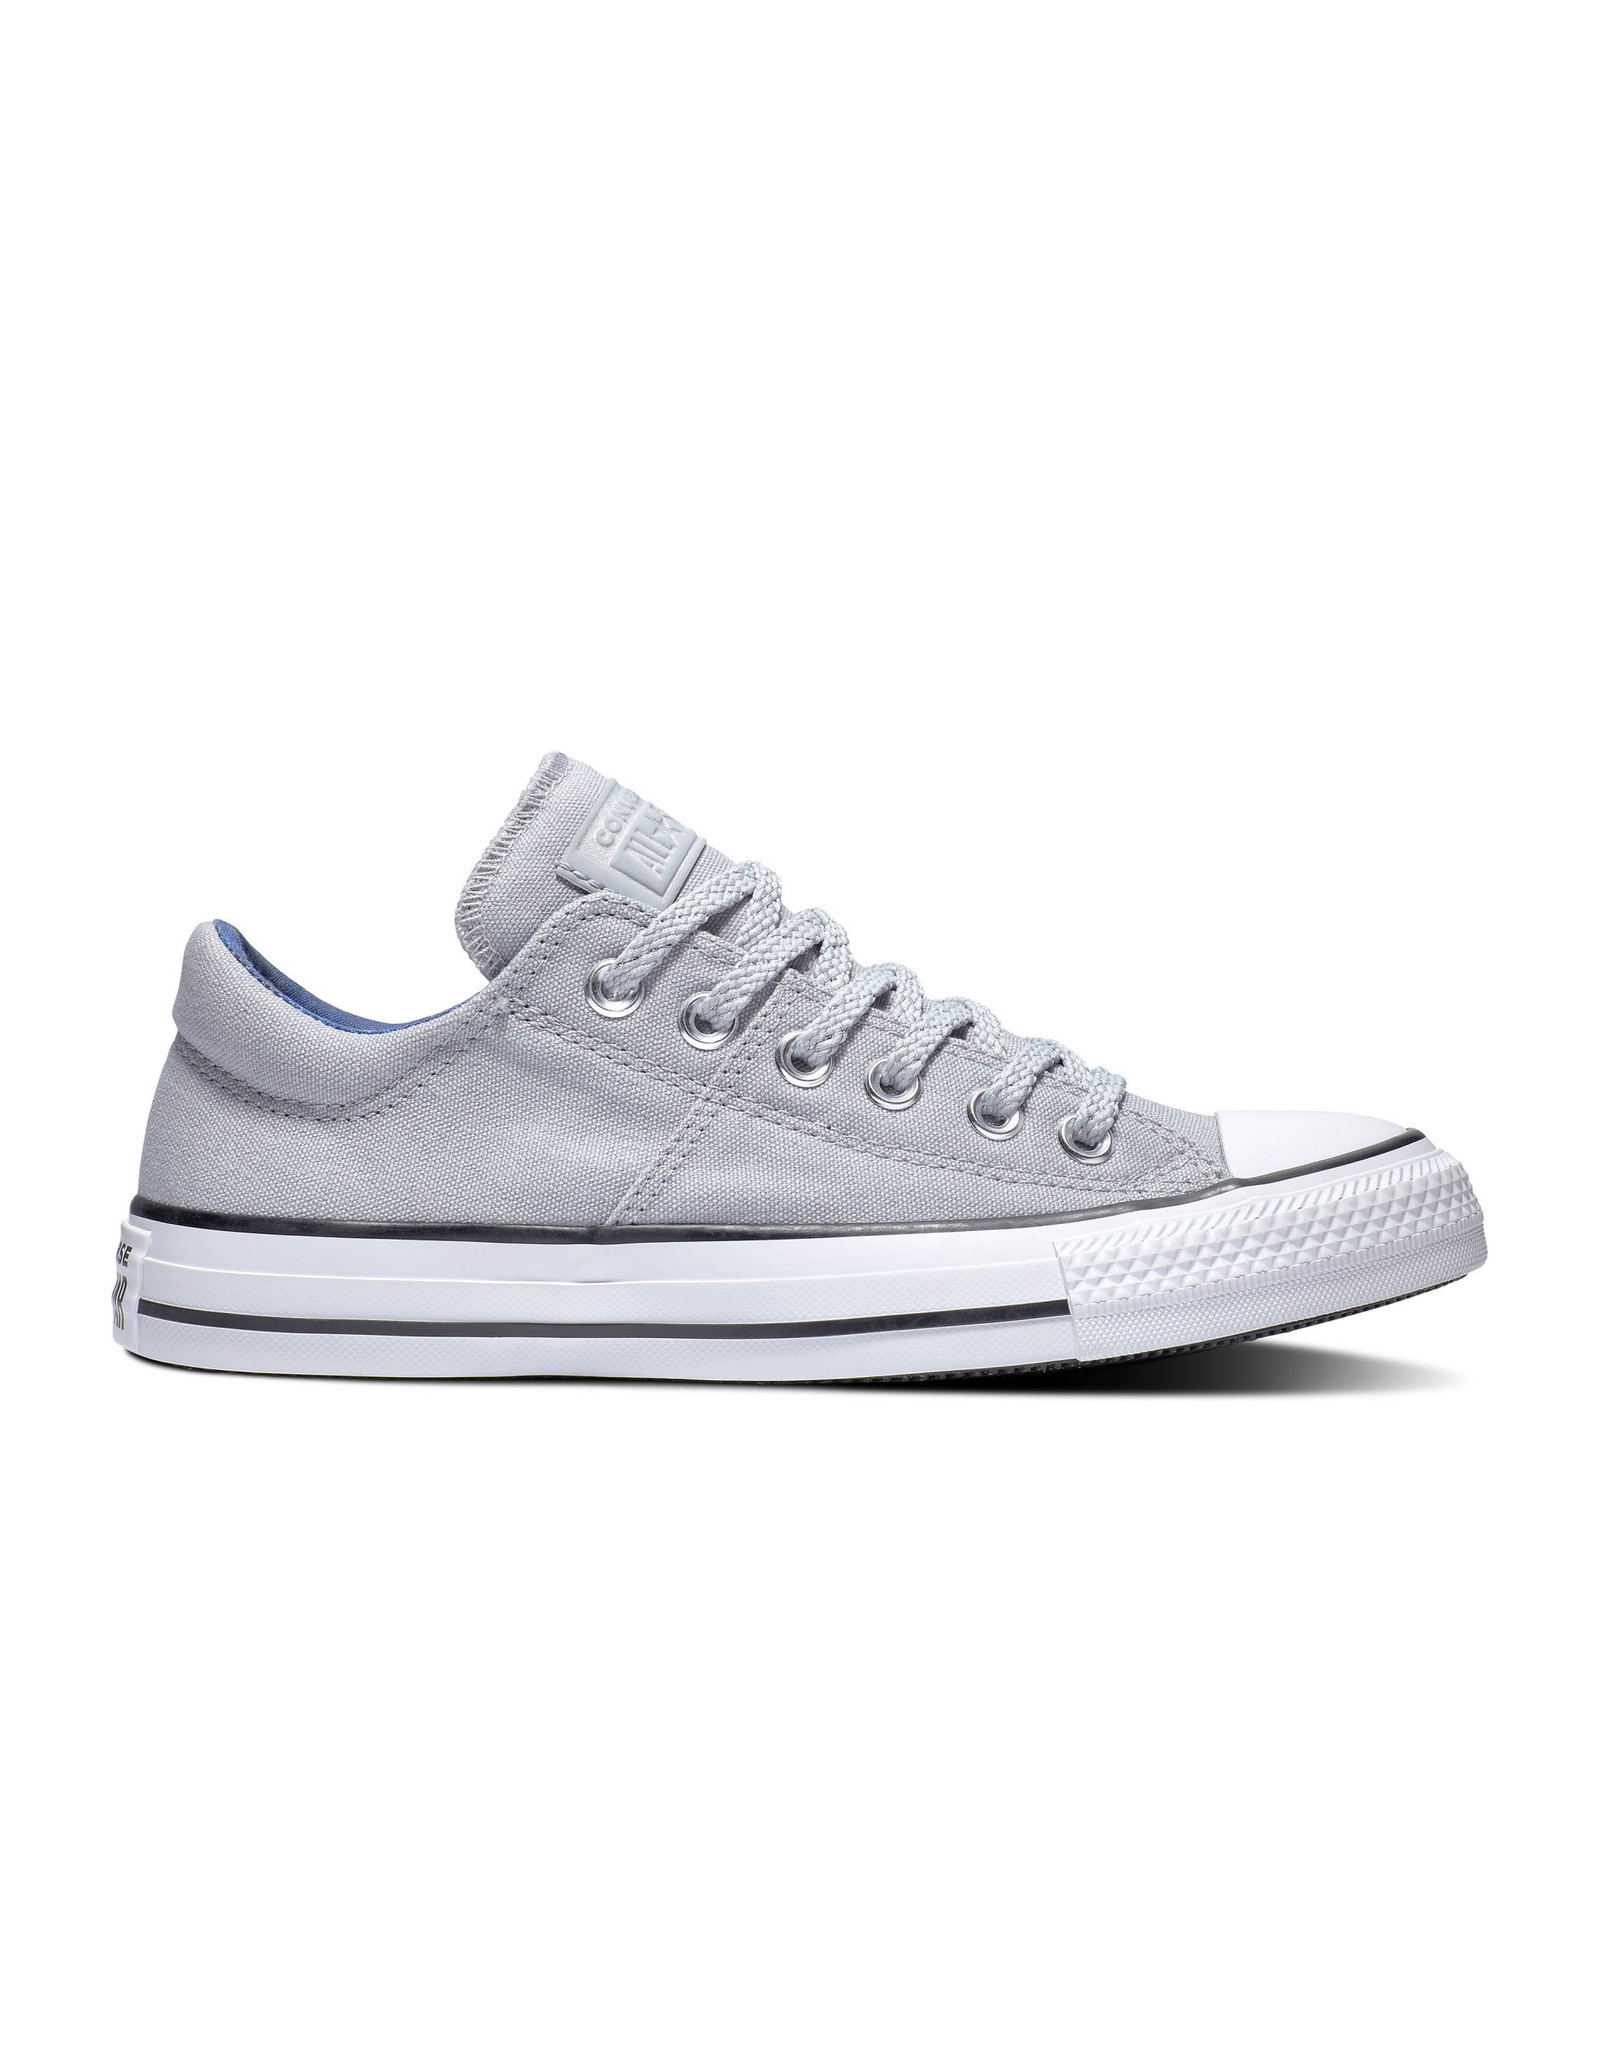 CONVERSE CHUCK TAYLOR ALL STAR MADISON OX WOLF GREY/WHITE/BLACK C13MOL-565222C